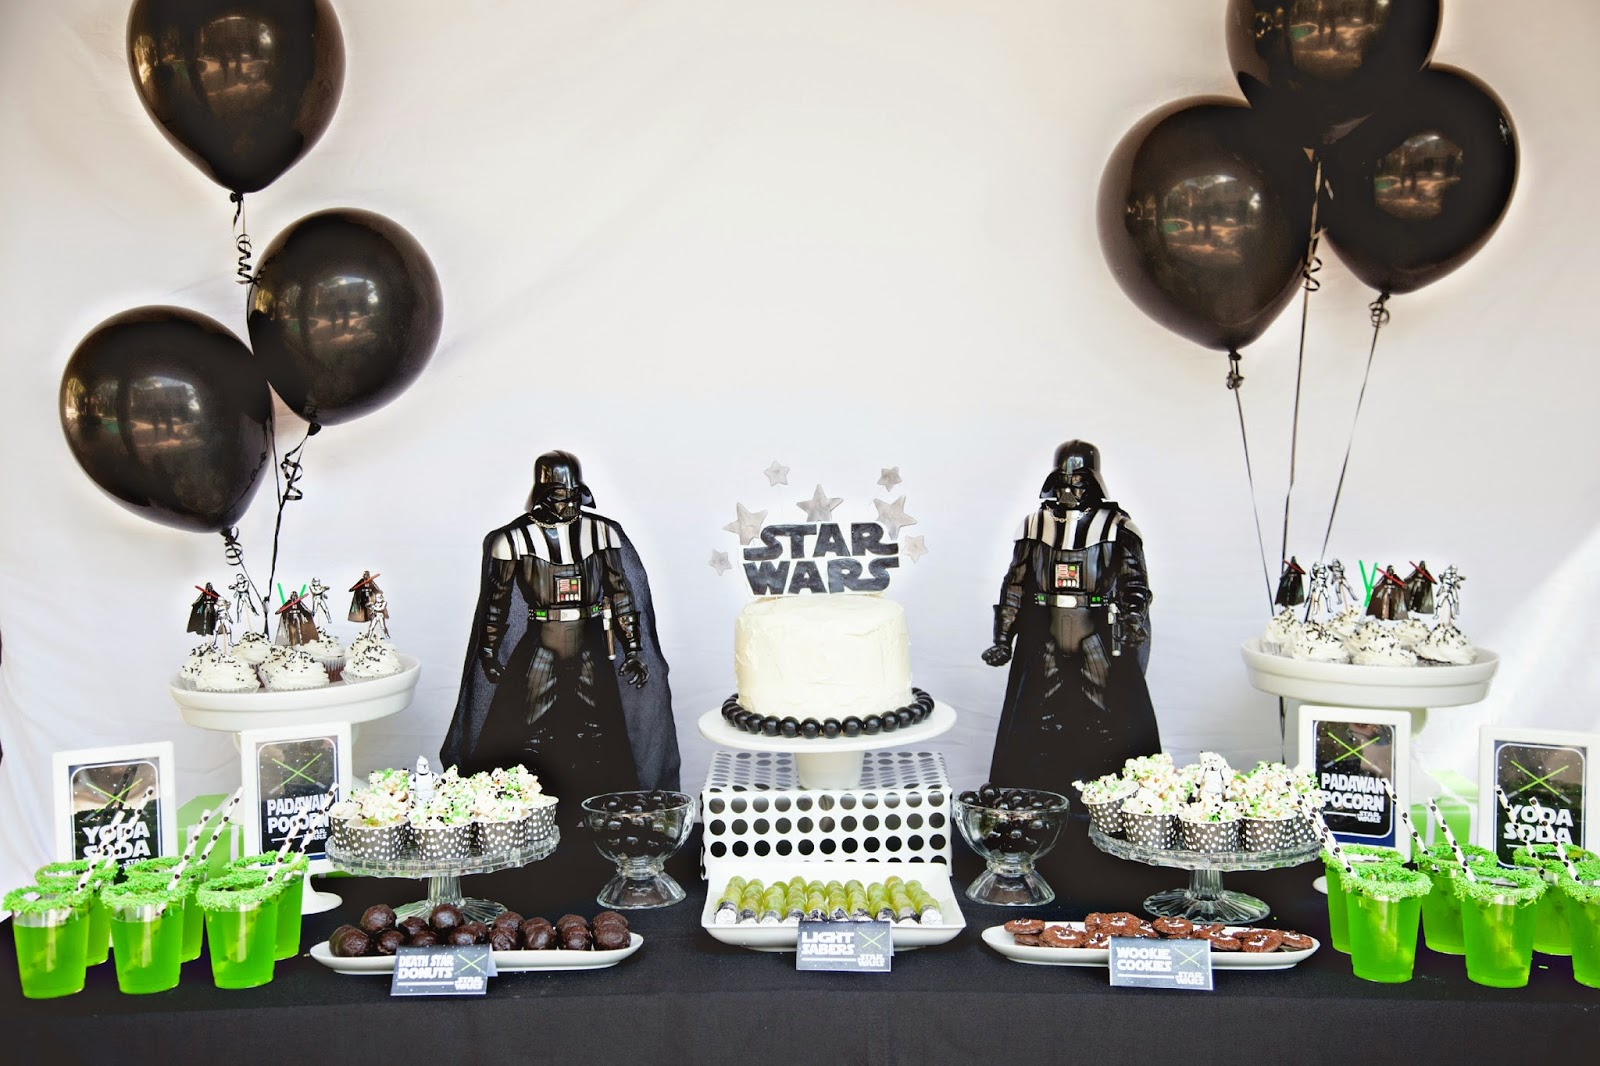 star wars party by bridgey widgey - Star Wars Party Decorations